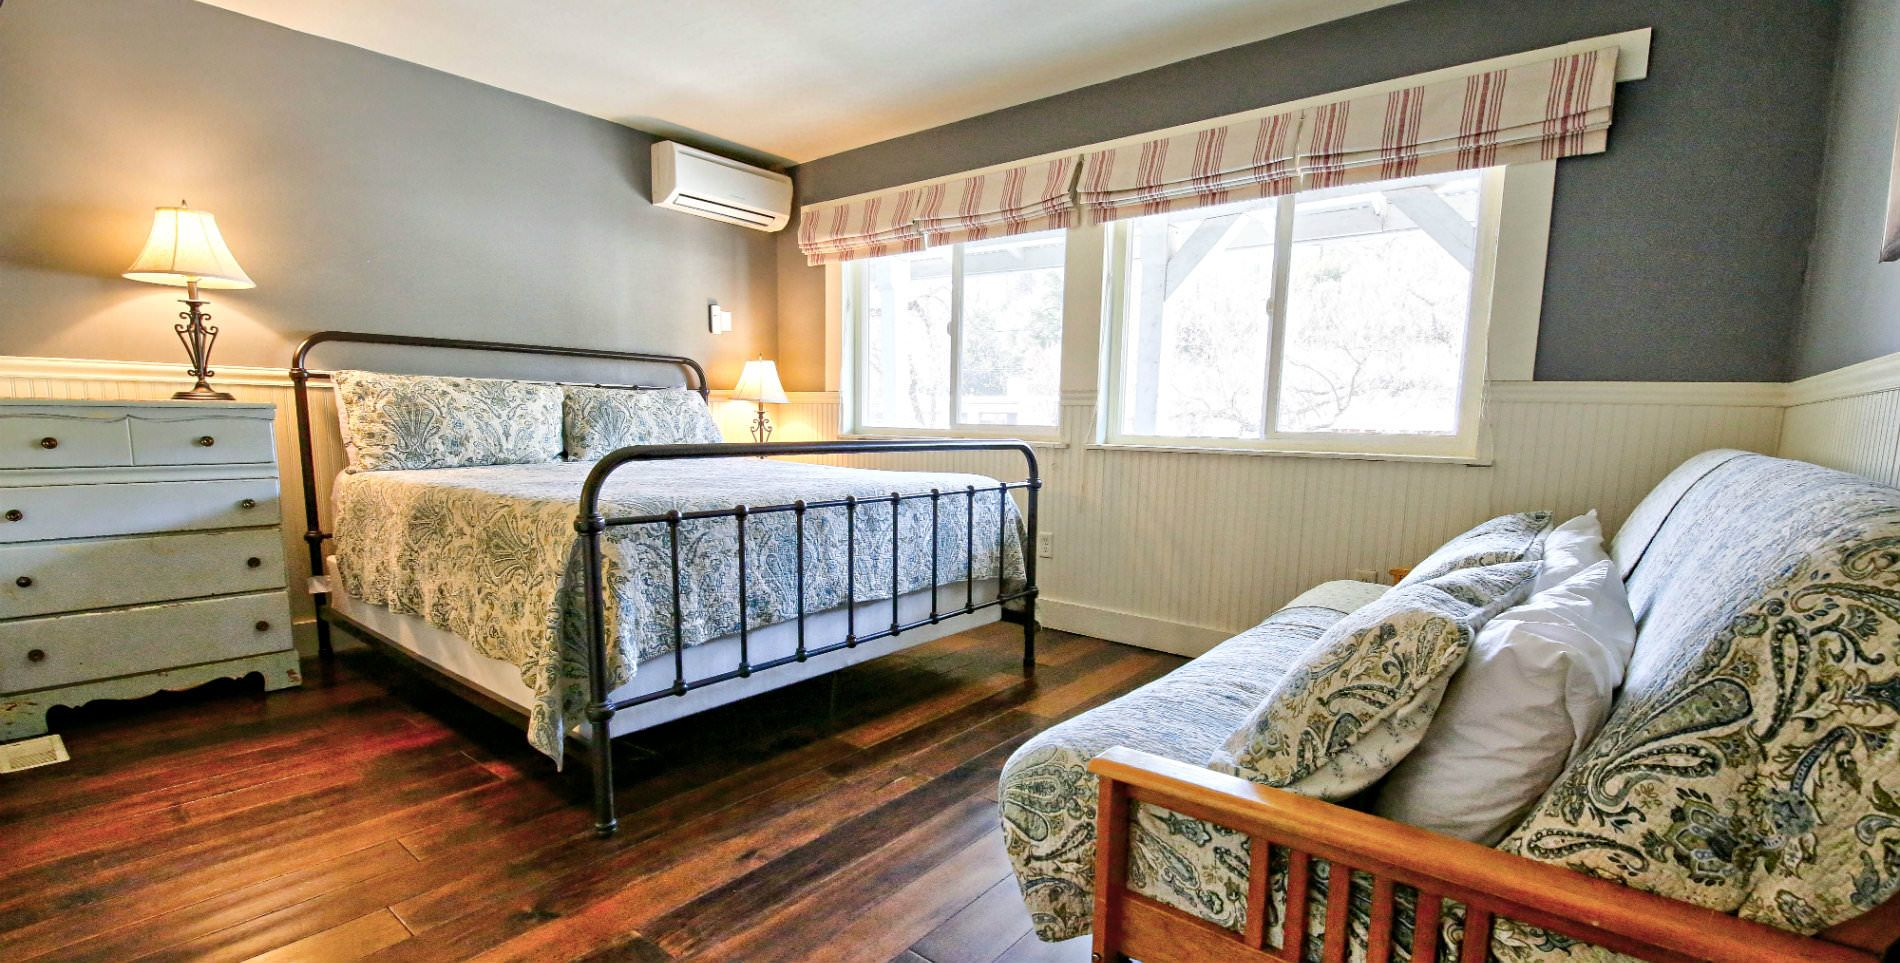 large black cast iron bed with neutral soft gray linens in room with hardwood floors and four windows with lots of natural light and wood futon bed with matching linens